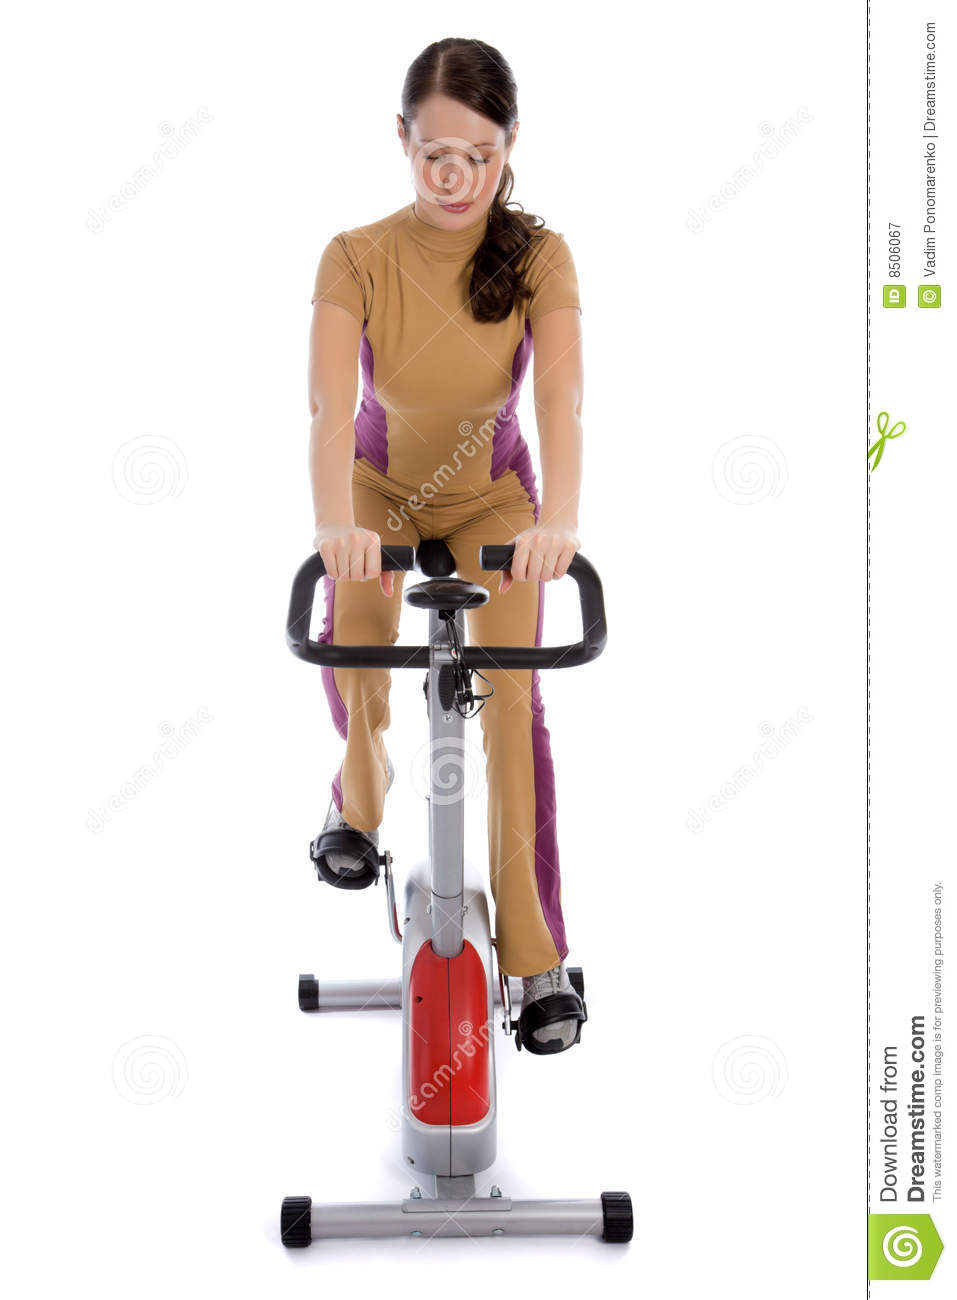 Woman Riding Stationary Bicycle In Health Club Royalty ...